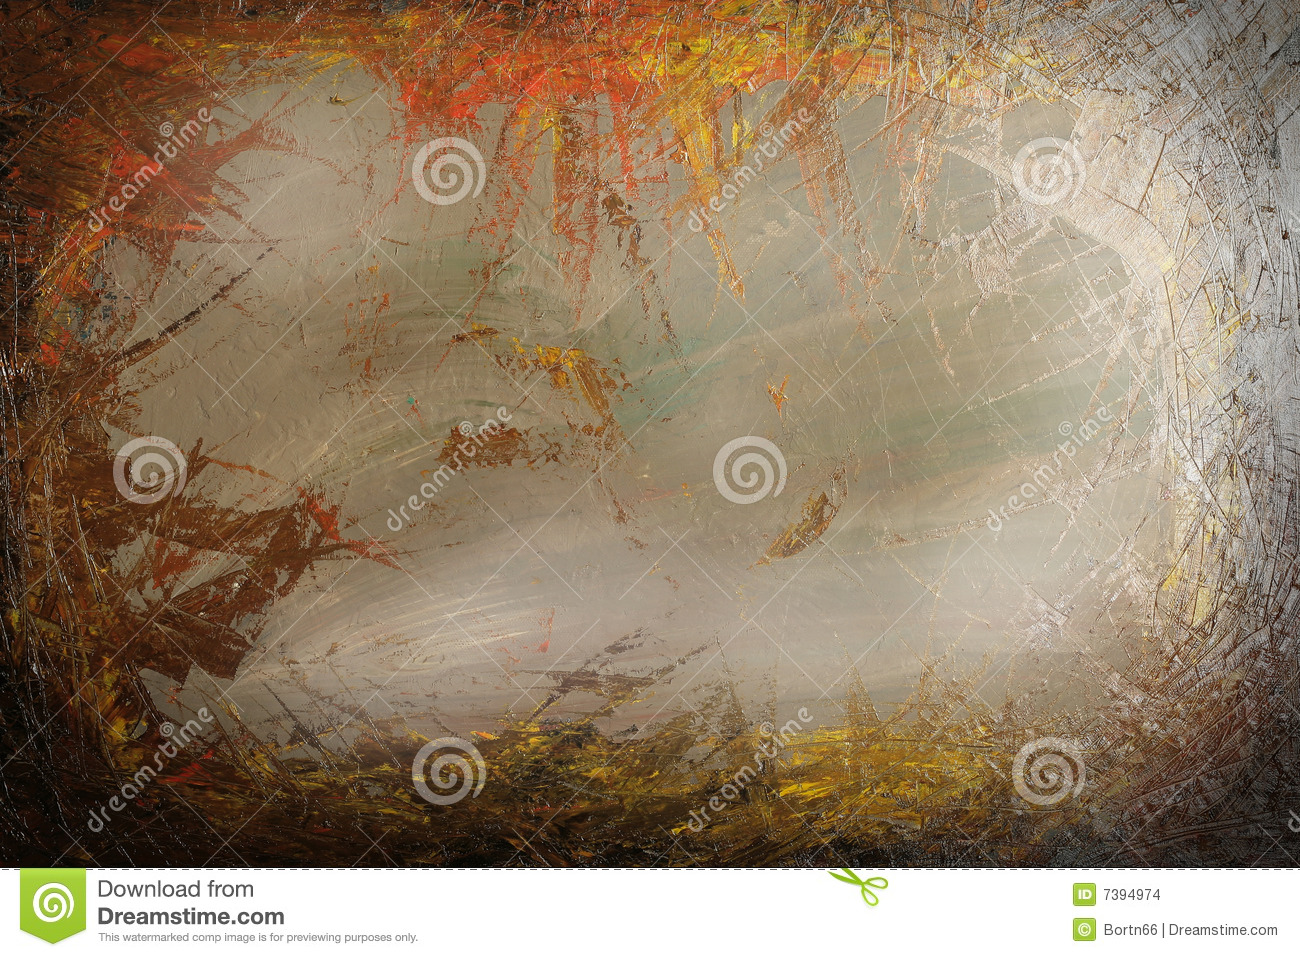 Abstract, textured, backgrounds